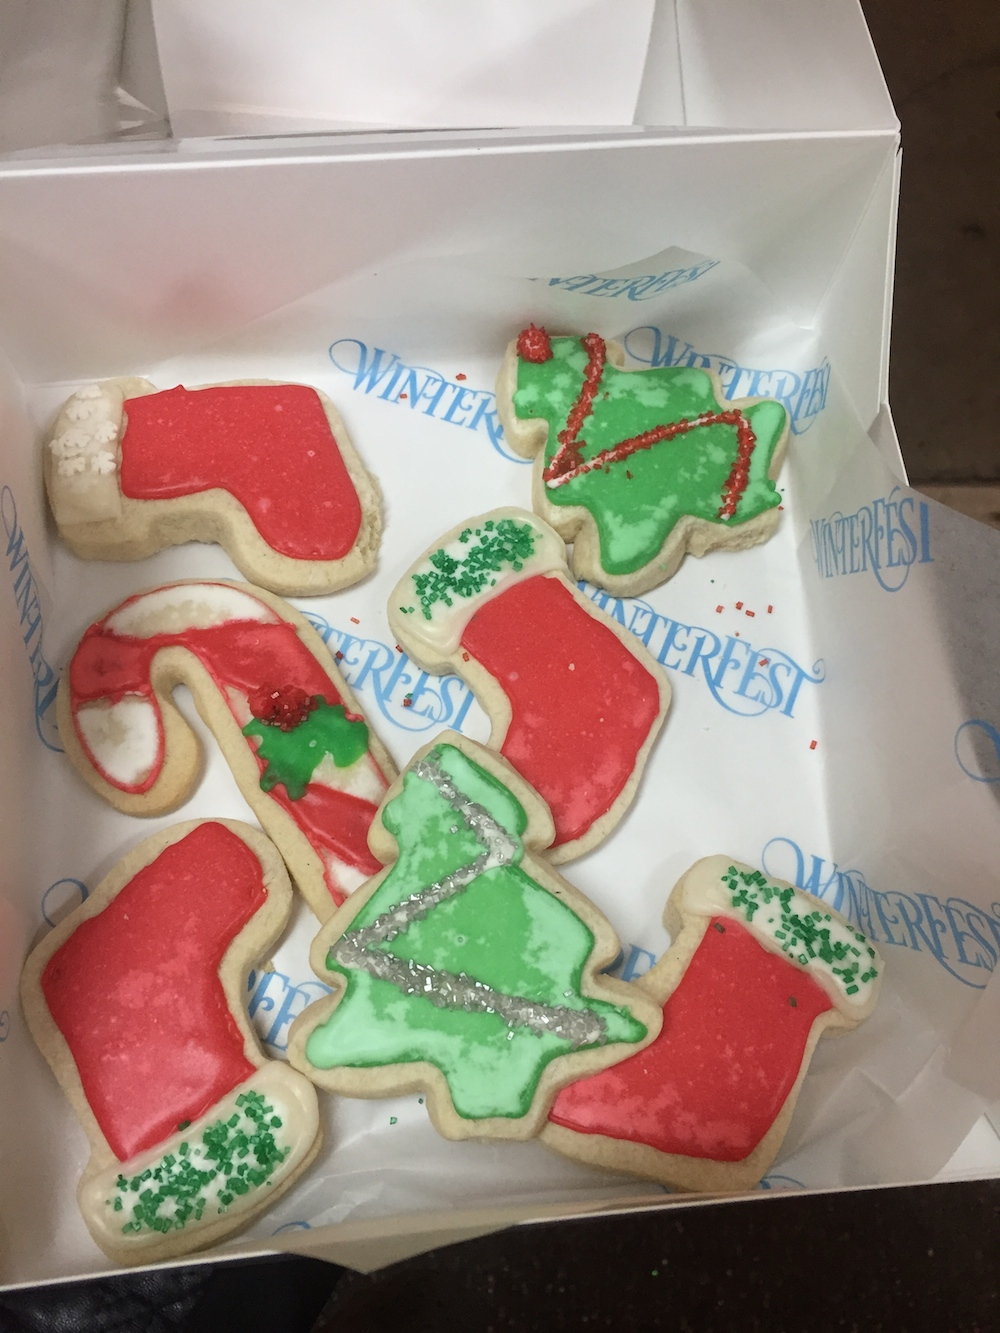 Decorated cookies from Mrs. Claus' Kitchen at Worlds of Fun's WinterFest in Kansas City, Missouri